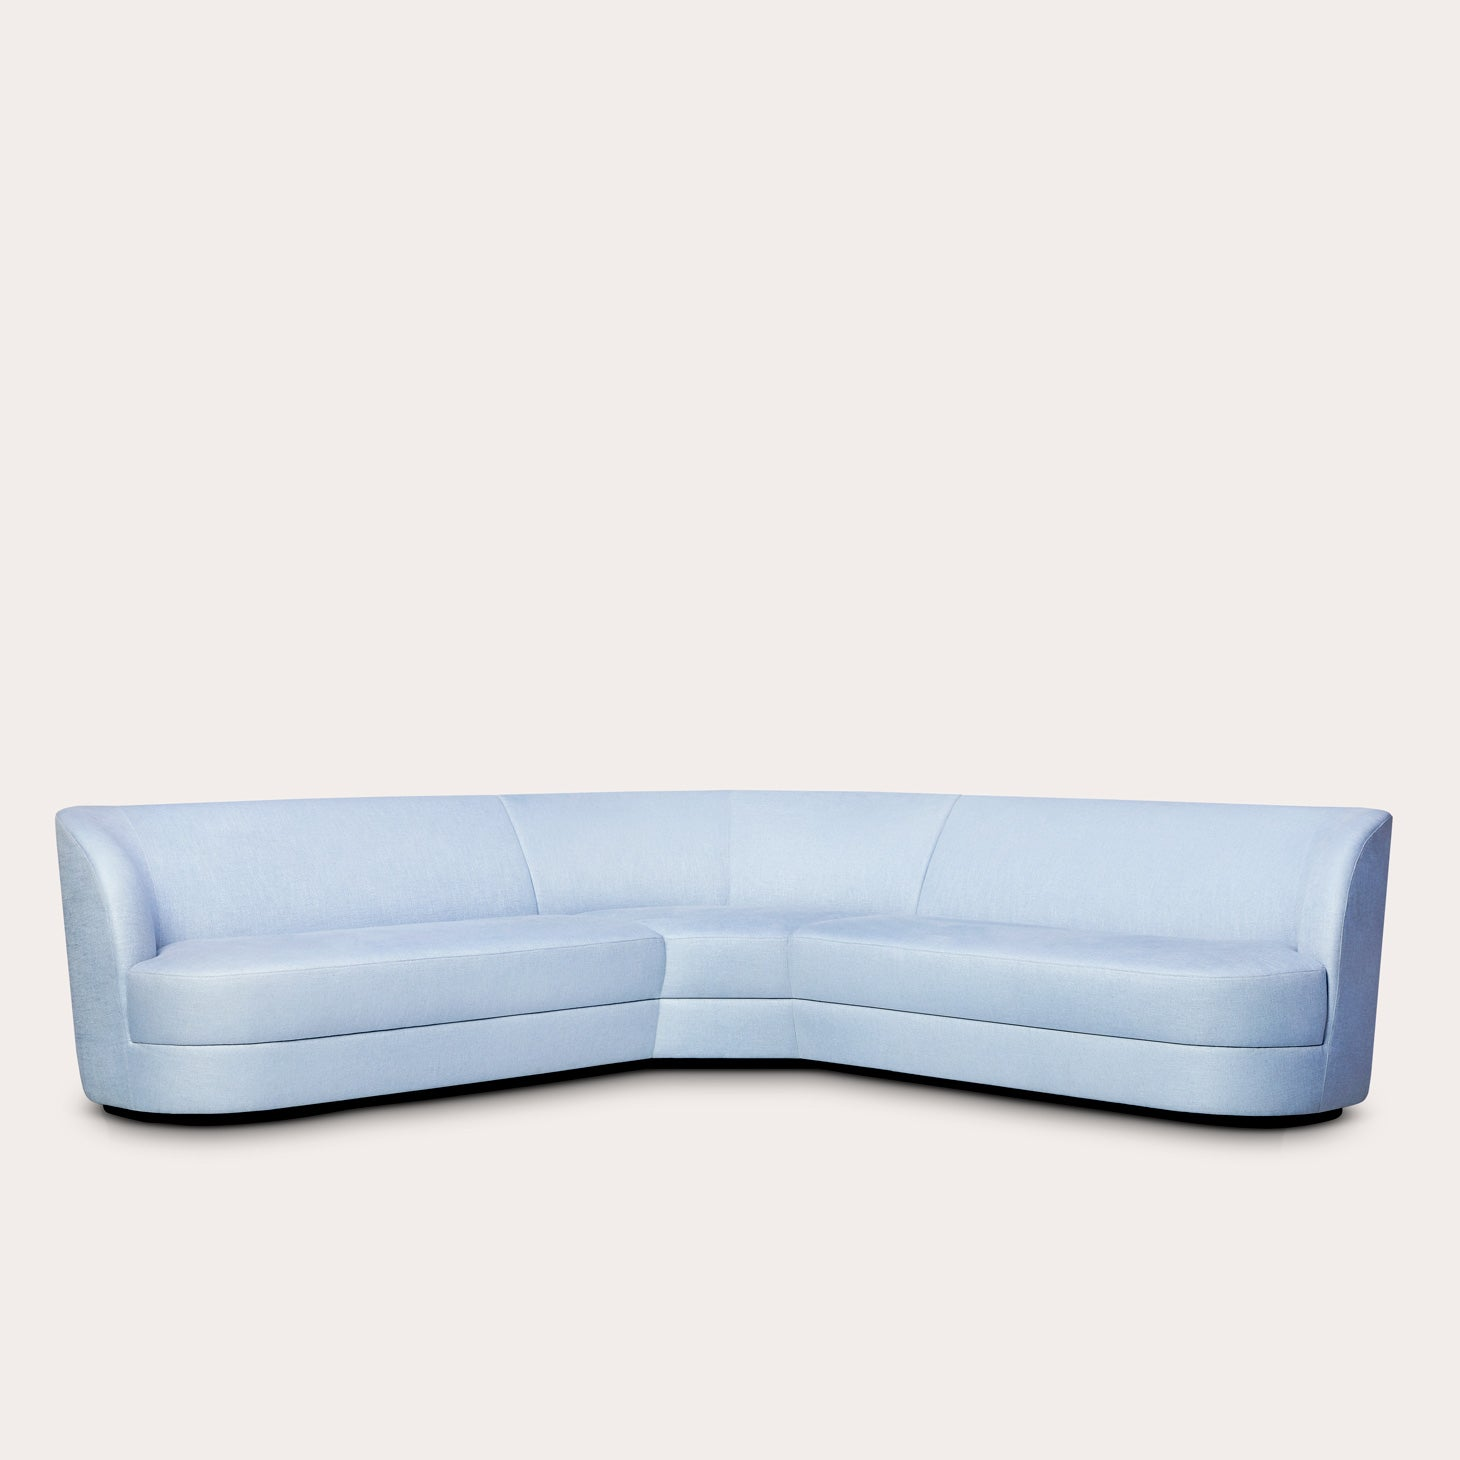 Lombard Street V Sectional Three Seating Yabu Pushelberg Designer Furniture Sku: 758-240-10254